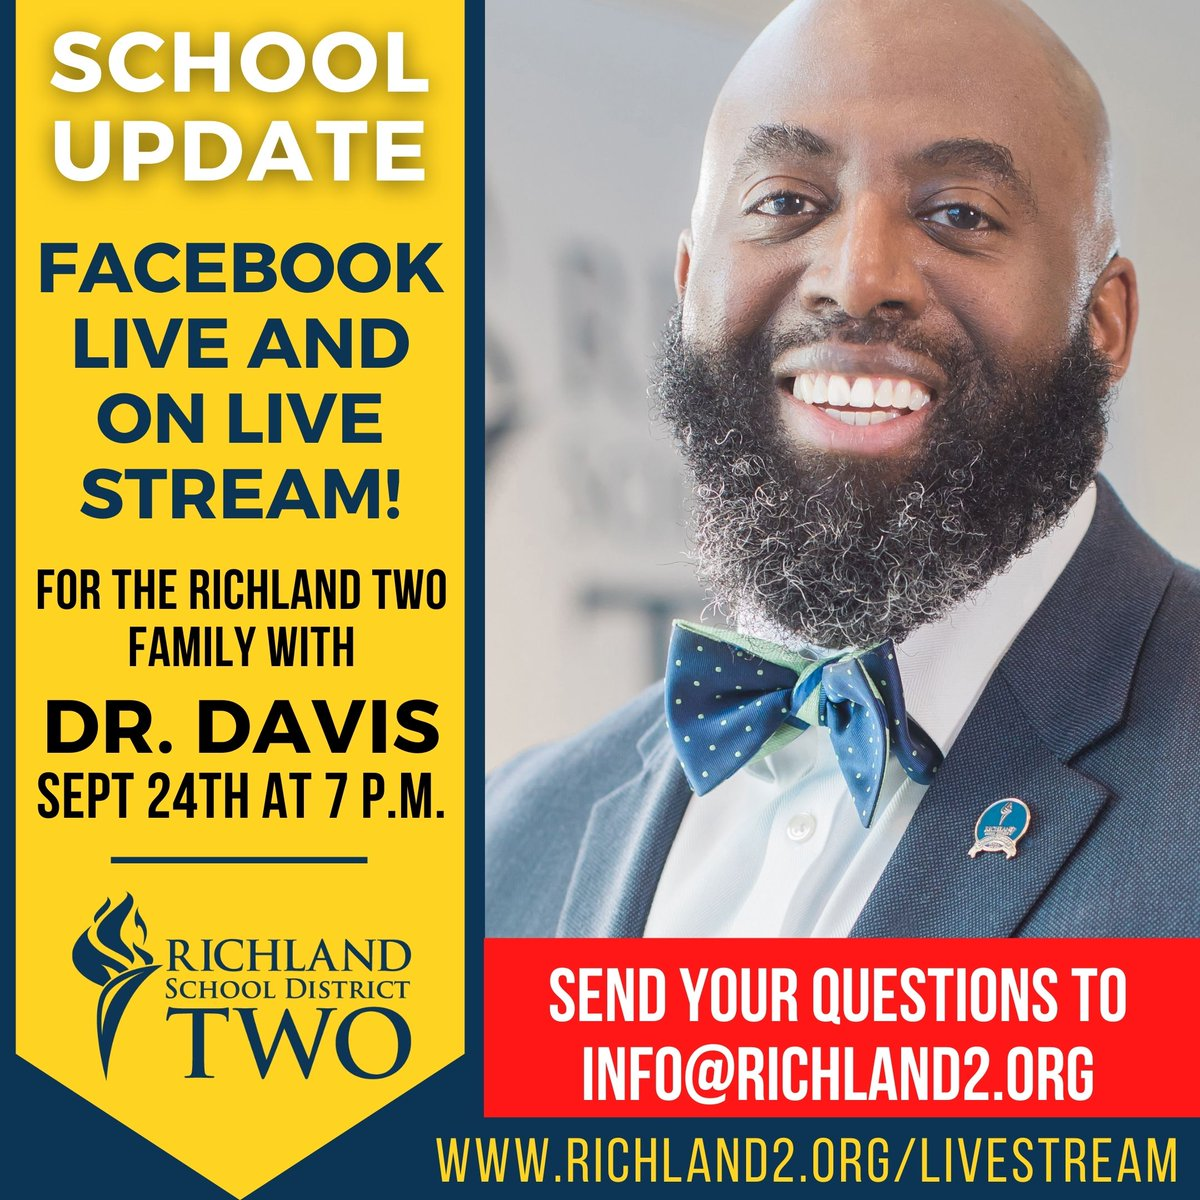 TUNE IN THIS THURSDAY, SEPT 24TH AT 7 P.M. FOR AN UPDATE FROM OUR SUPERINTENDENT, DR. BARON DAVIS!  HAVE QUESTIONS? Send them to info@richland2.org  https://t.co/1l0e35lSb3 https://t.co/y38xDBAzxu @DrBaronDavis https://t.co/0bVcXsS359